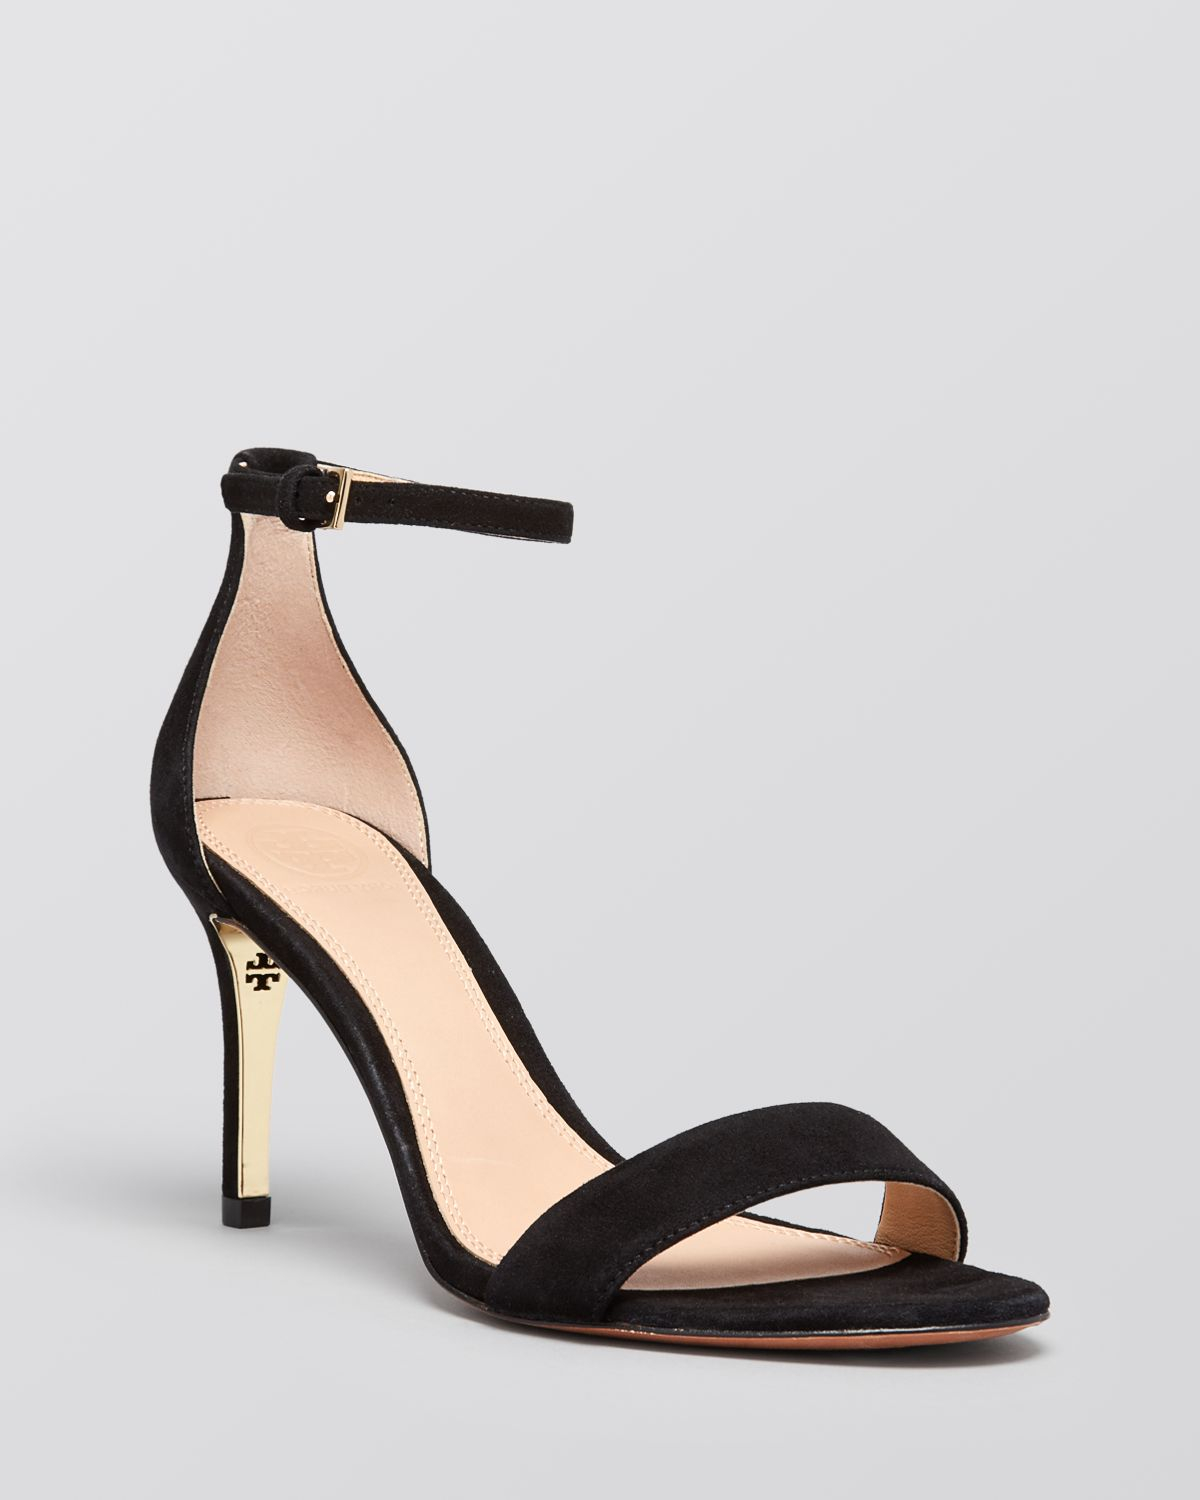 Lyst - Tory burch Ankle Strap Sandals - Keri High Heel in Black